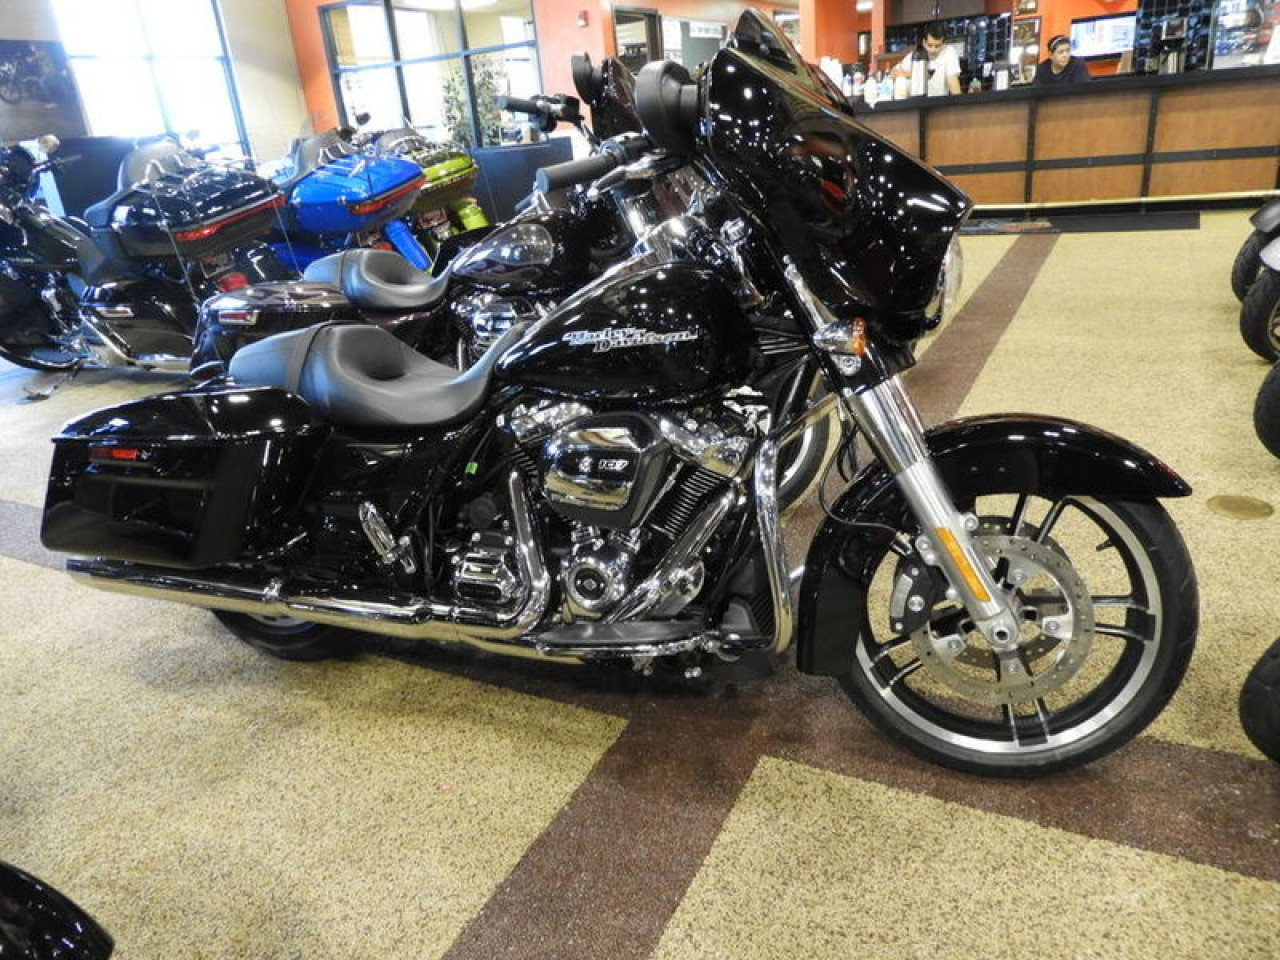 Harley Davidson Touring Motorcycles For Sale Dallas Tx >> 2017 Harley-Davidson Touring Street Glide Special for sale near Garland, Texas 75041 ...